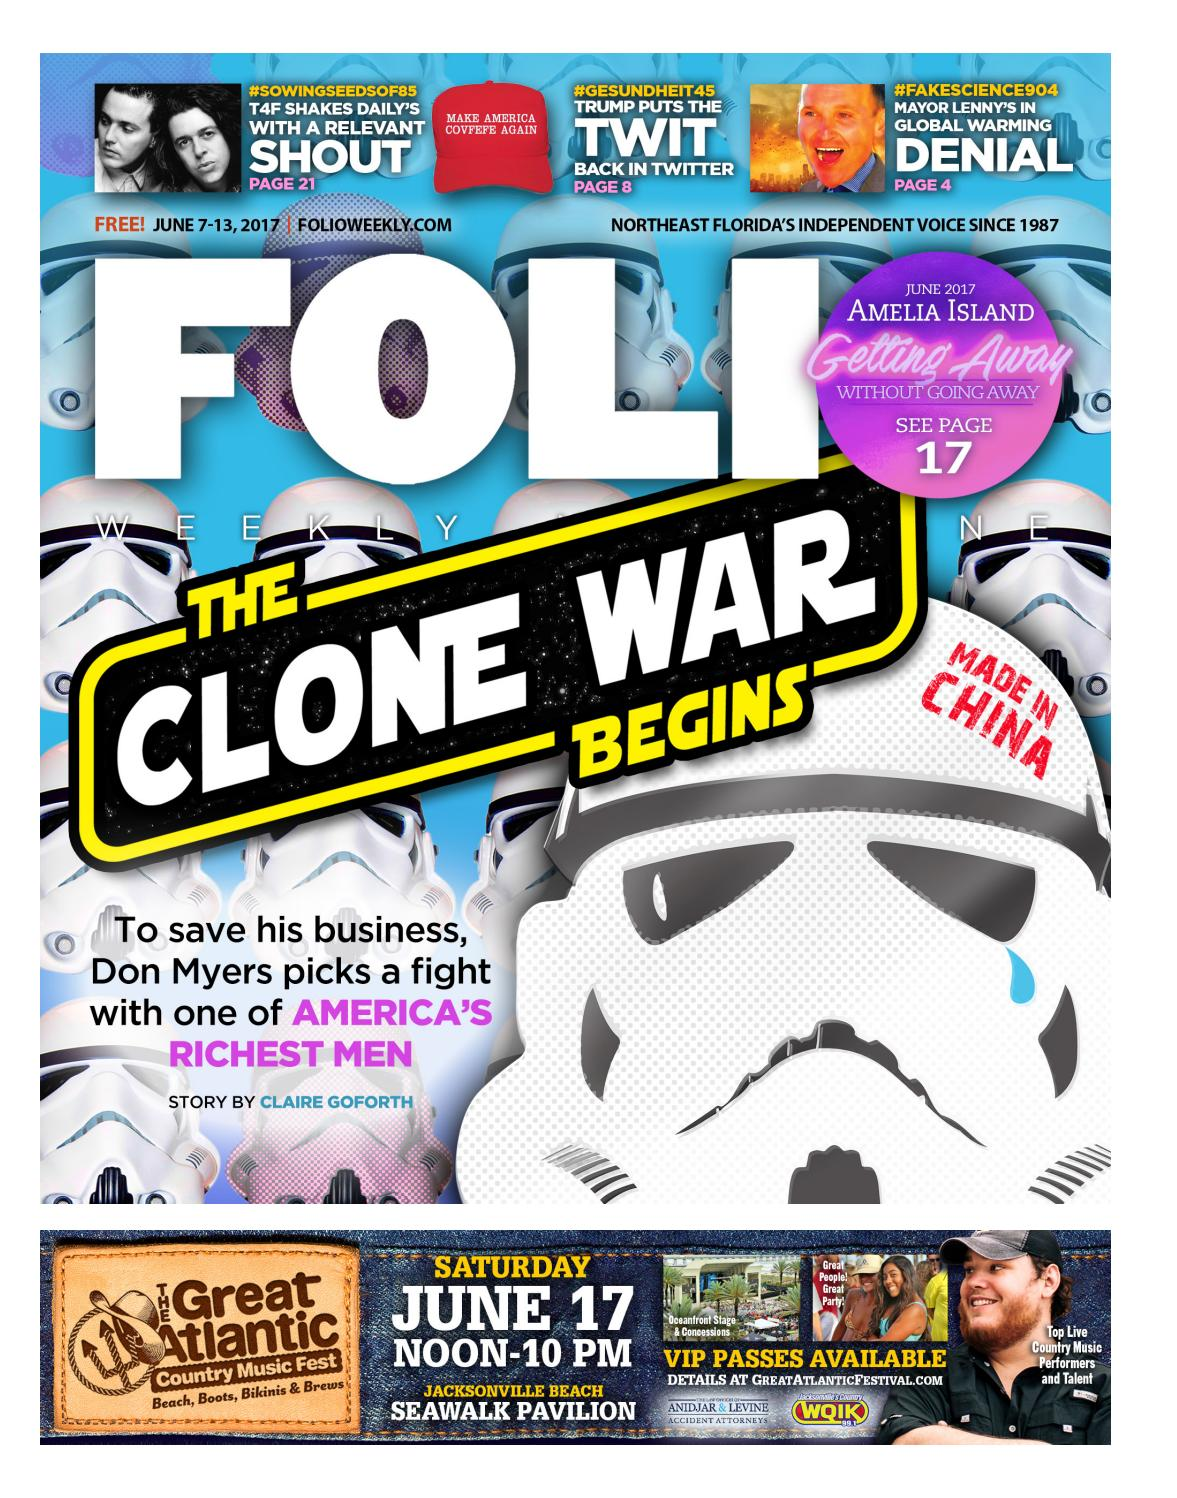 47aae7e4 06/07/17 The Clone Wars Begin by Folio Weekly - issuu